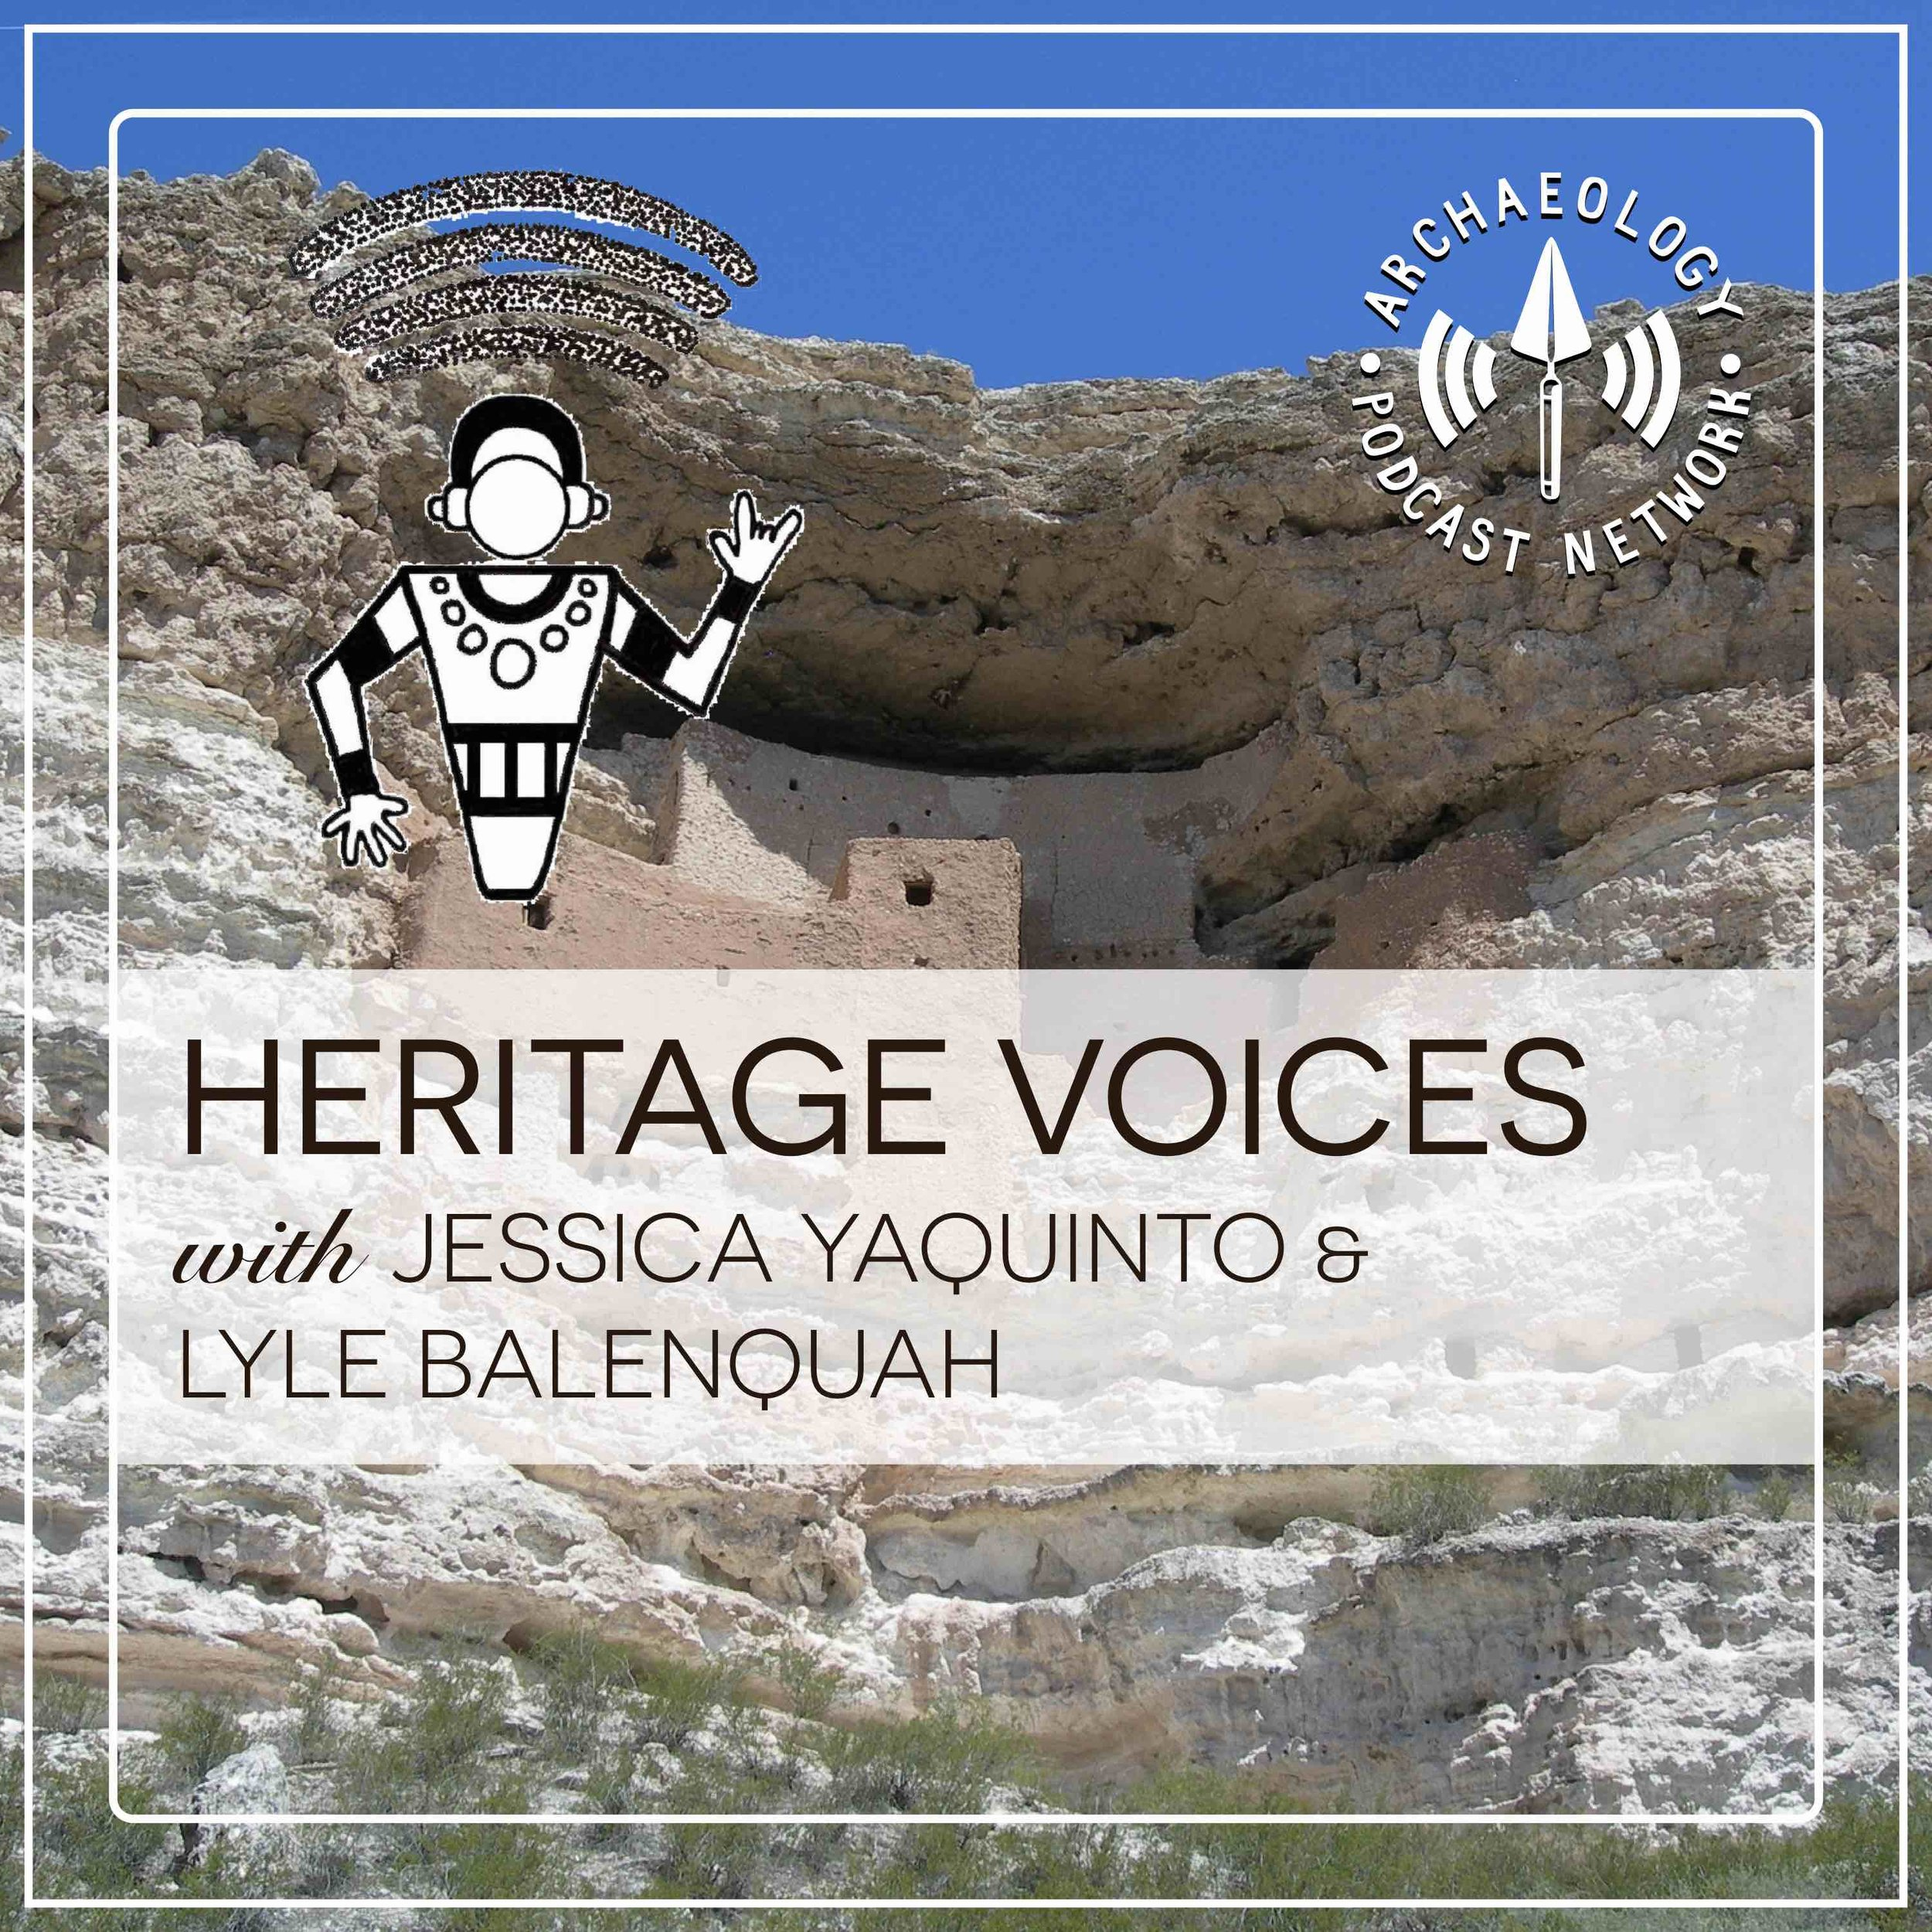 2019 Heritage Voices.jpeg